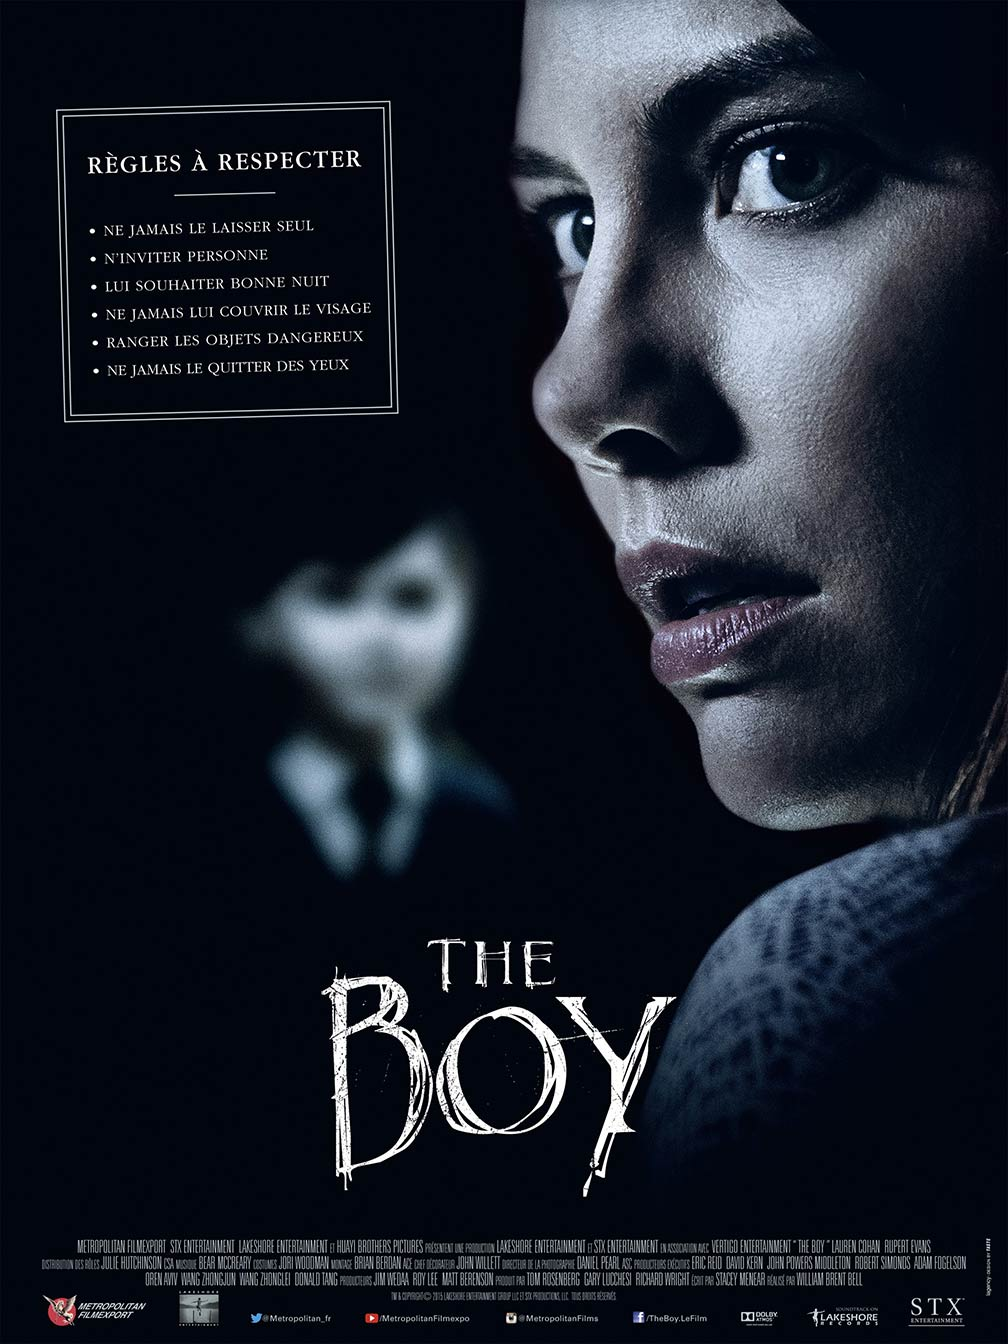 http://cdn.traileraddict.com/content/stx-entertainment/the-boy-2016-2.jpg